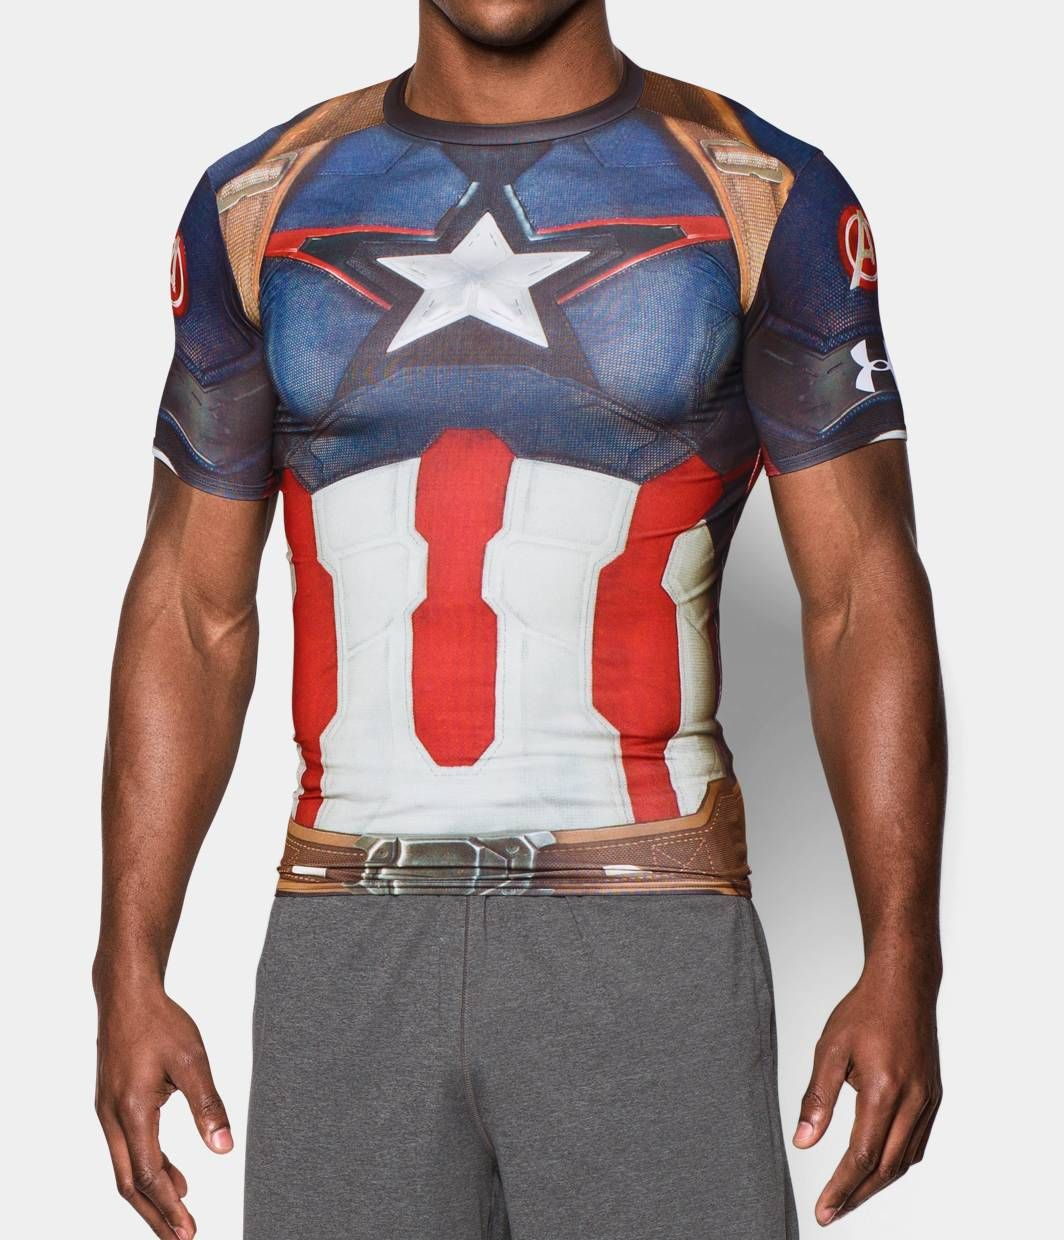 Men S Under Armour Alter Ego Captain America Compression Shirt Under Armour Us Cosplay Shirt Compression Shirt Under Armour Men